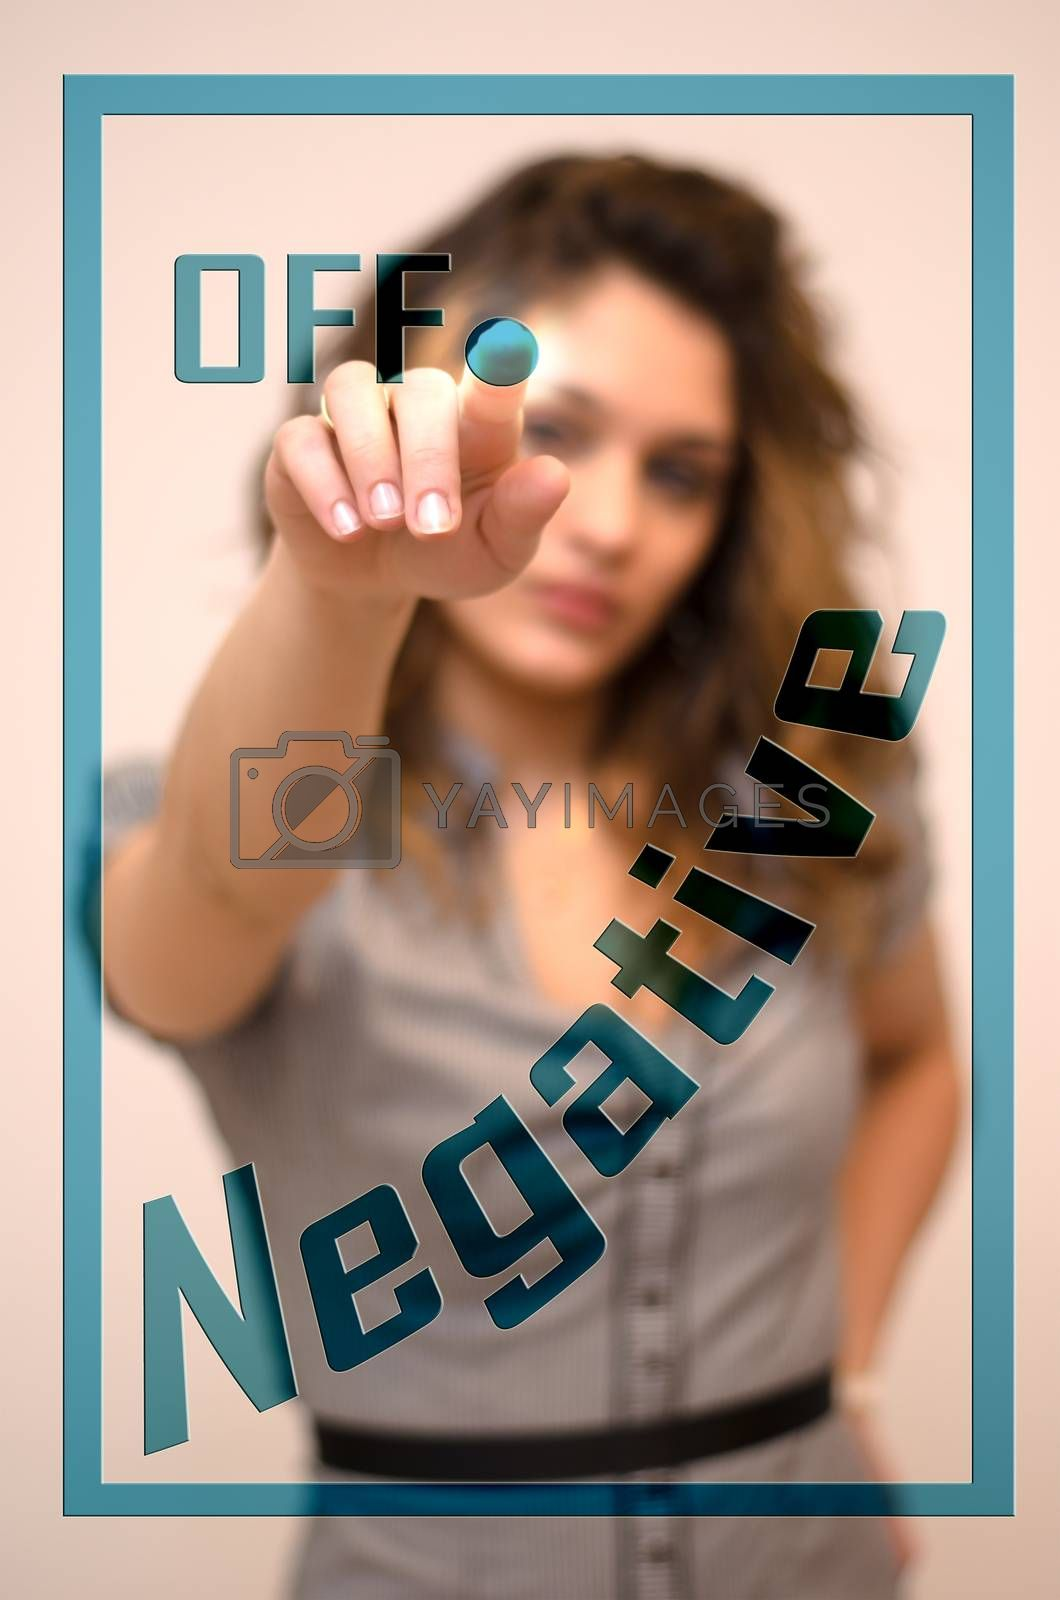 young woman turning off Negative on digital panel